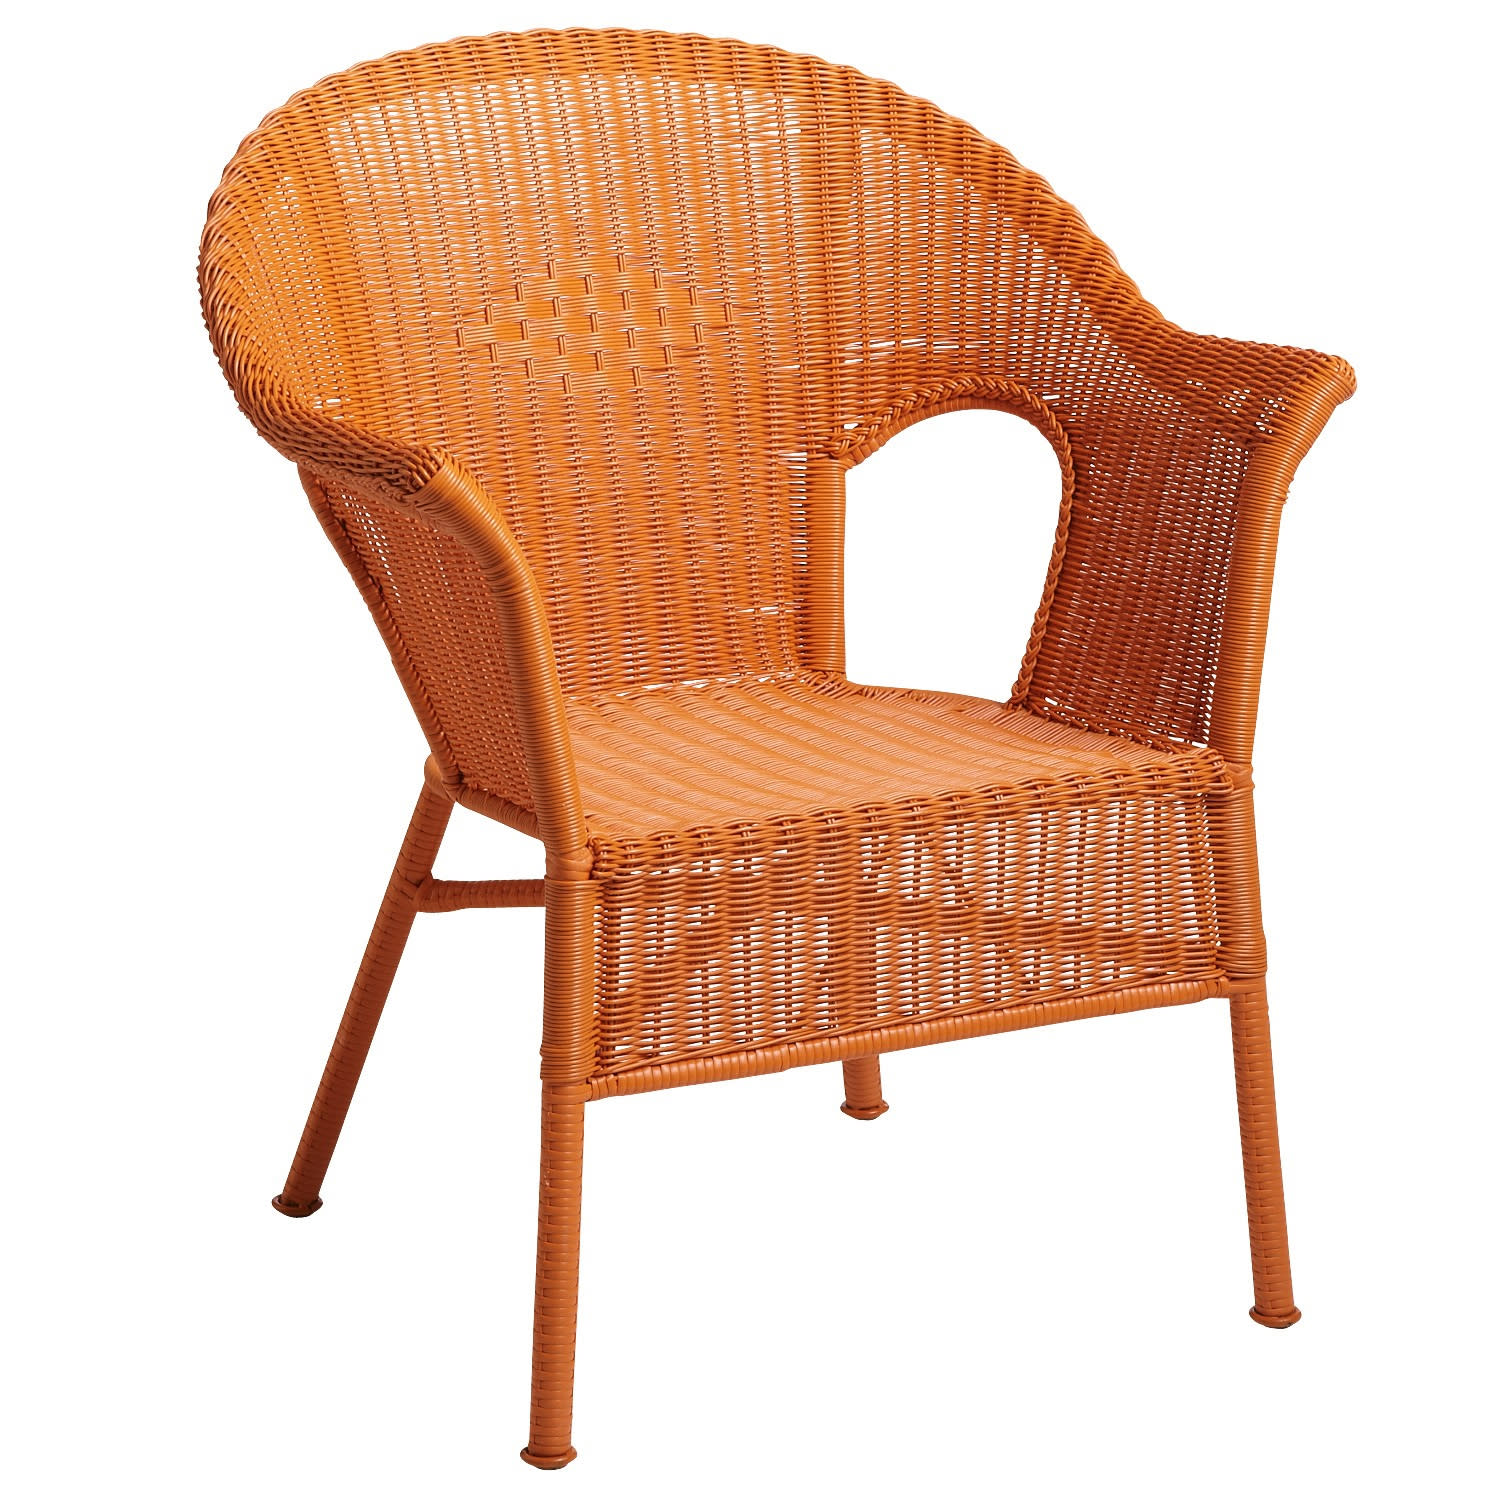 Awesome Right At Home Bright Ideas For Outdoor Furniture Machost Co Dining Chair Design Ideas Machostcouk